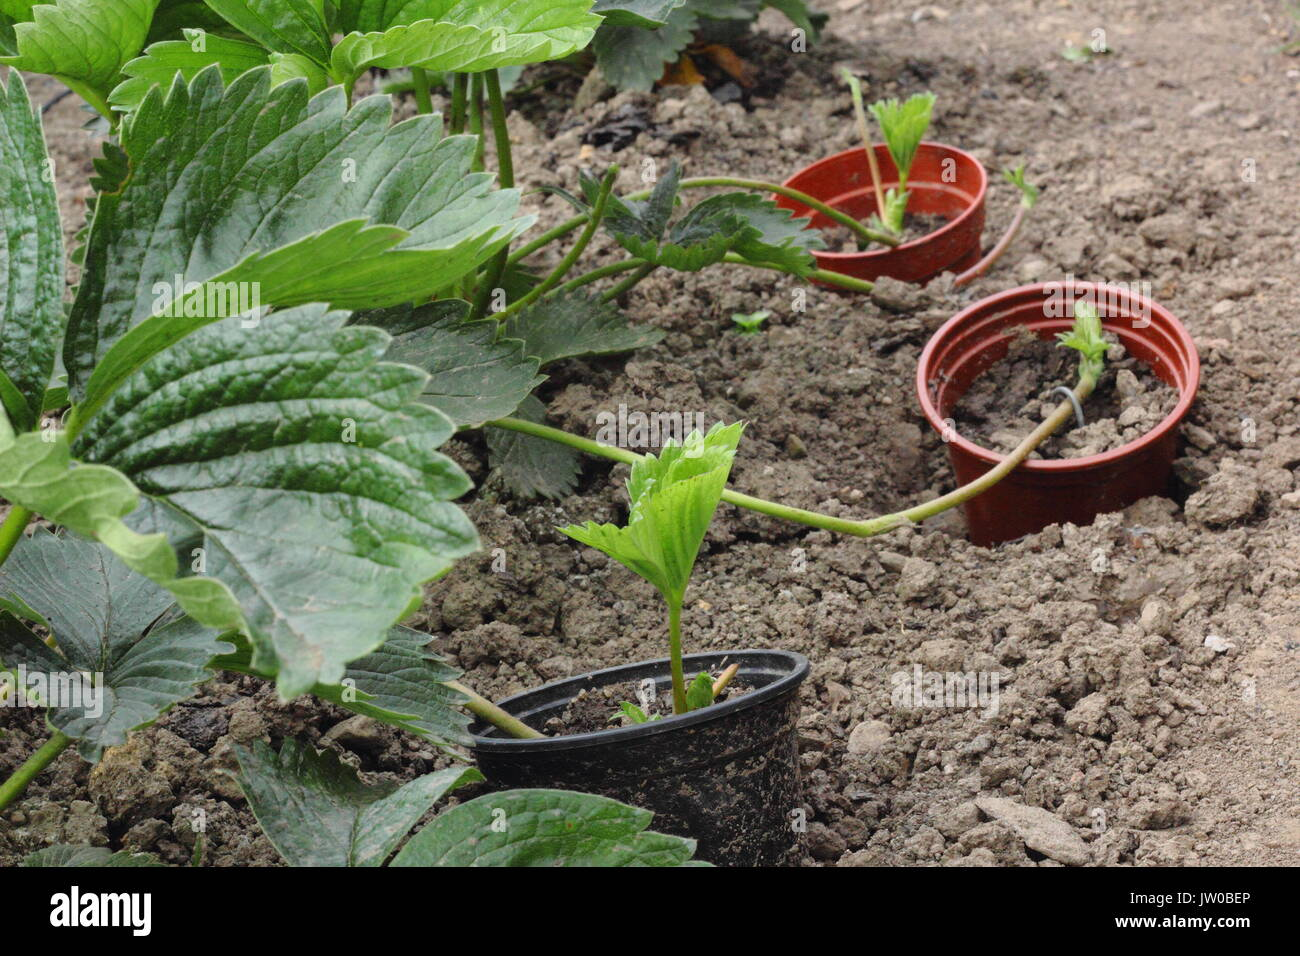 Runners from a healthy, mature strawberry plant are pegged into pots sunk into the ground to propagate new plants in an English kitchen garden,UK - Stock Image